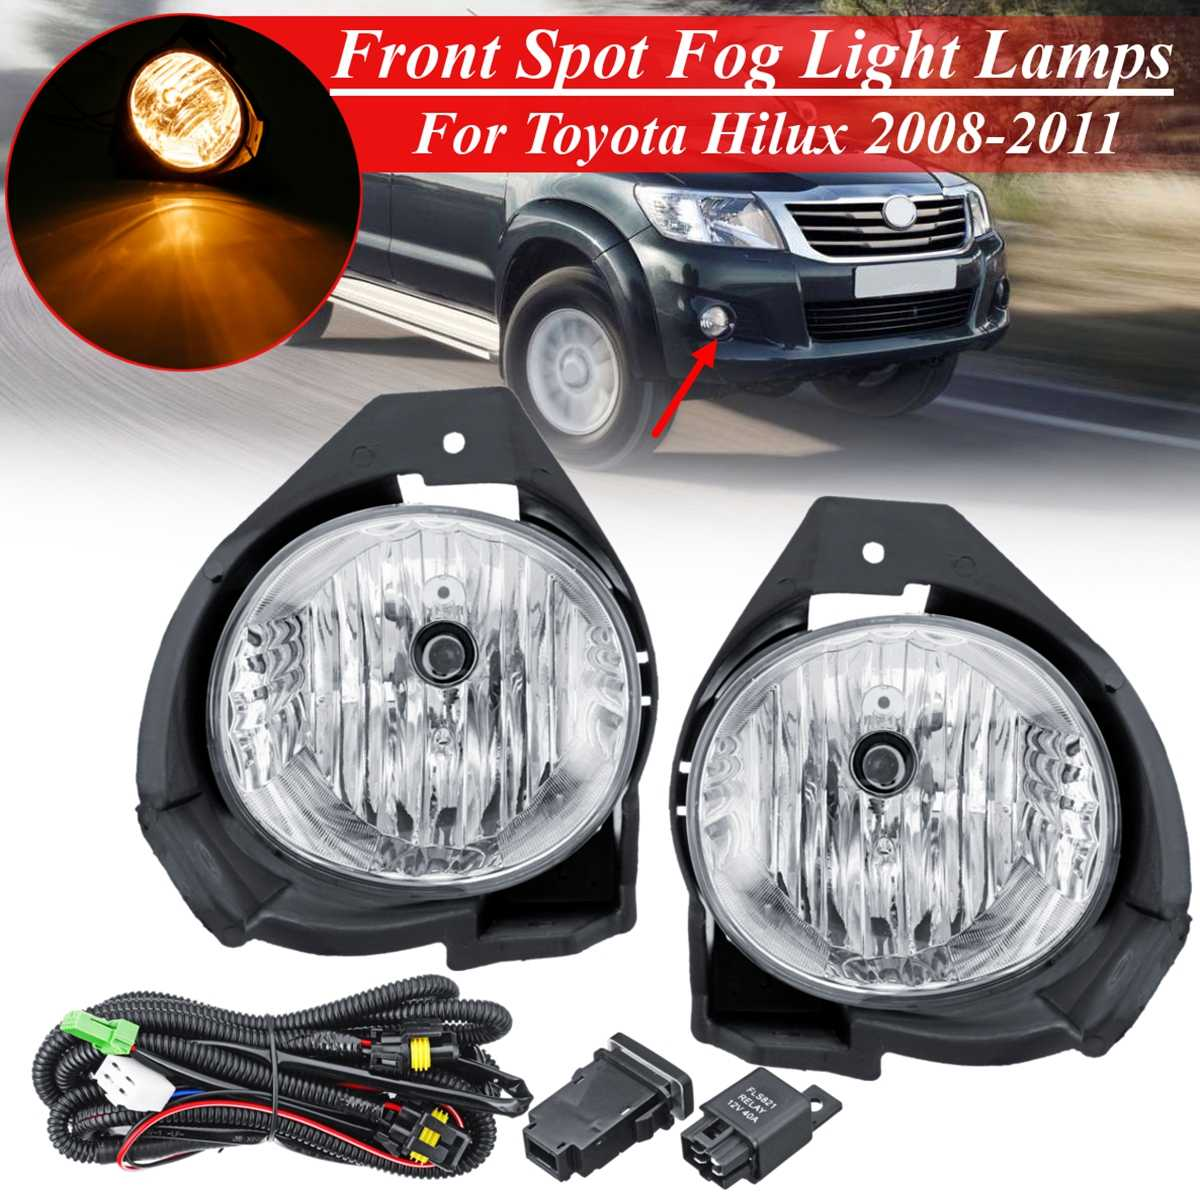 12V Fog Light For Toyota Hilux 2008 2009 2010 2011 Replacement 1 Pair Car Front Bumper lamp Kit With Harness Bulb Switch Styling12V Fog Light For Toyota Hilux 2008 2009 2010 2011 Replacement 1 Pair Car Front Bumper lamp Kit With Harness Bulb Switch Styling